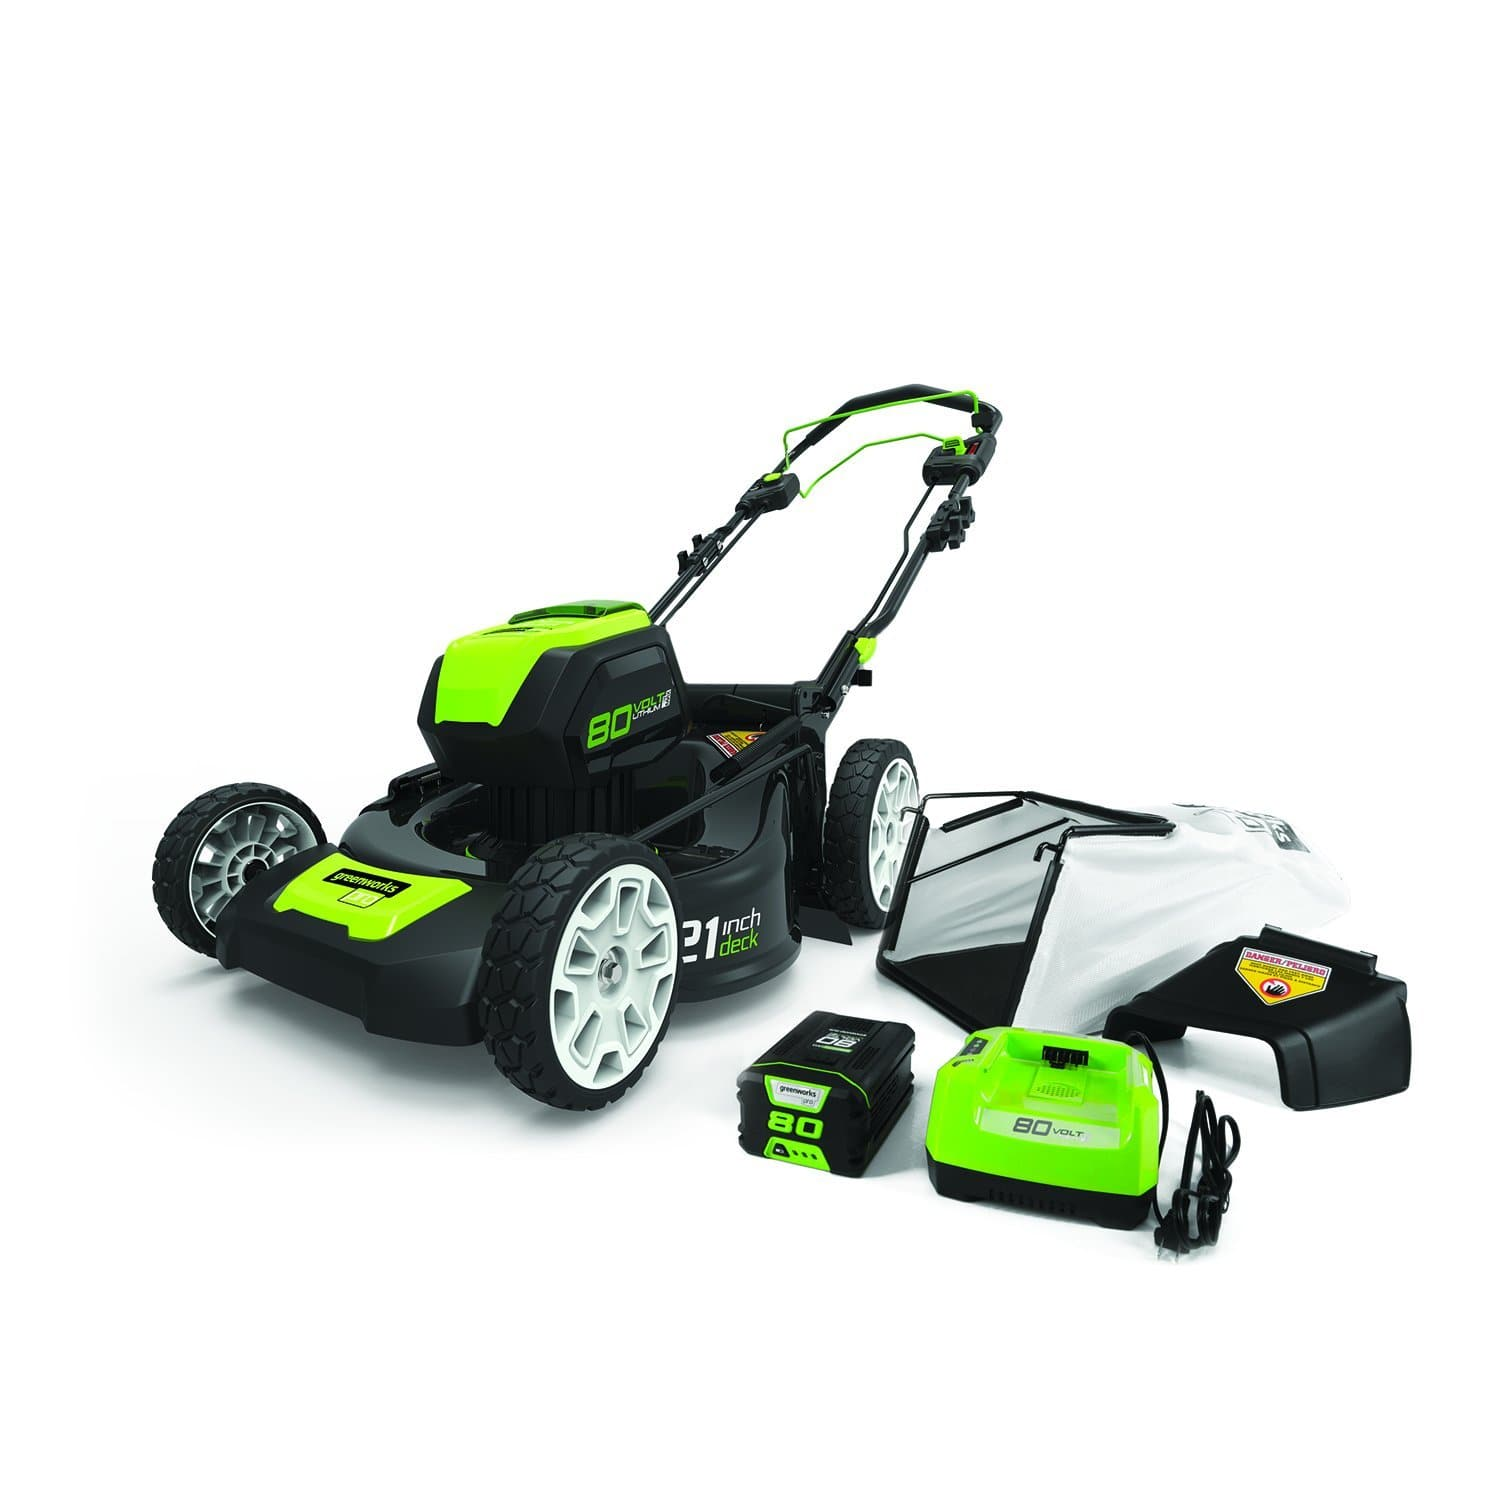 "GreenWorks Pro 80V 21"" Self Propelled Cordless Lawn Mower w Battery"